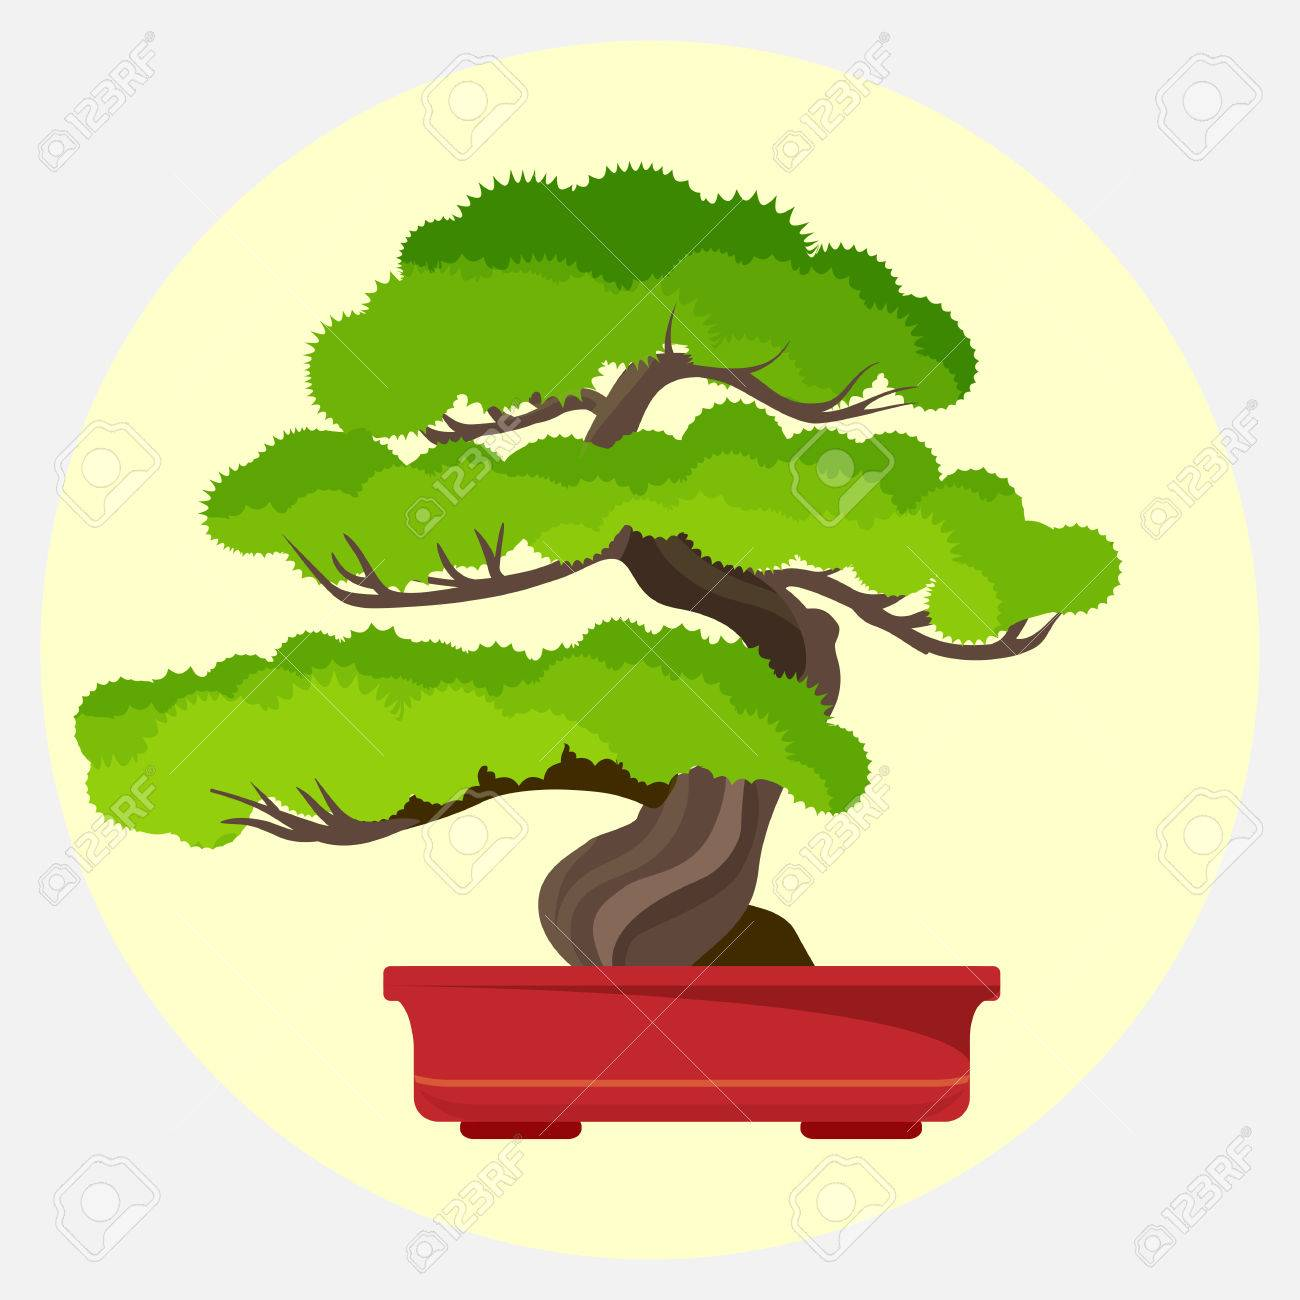 Bonsai Pine Decorative Small Tree Growing In Container Vector Royalty Free Cliparts Vectors And Stock Illustration Image 79255486